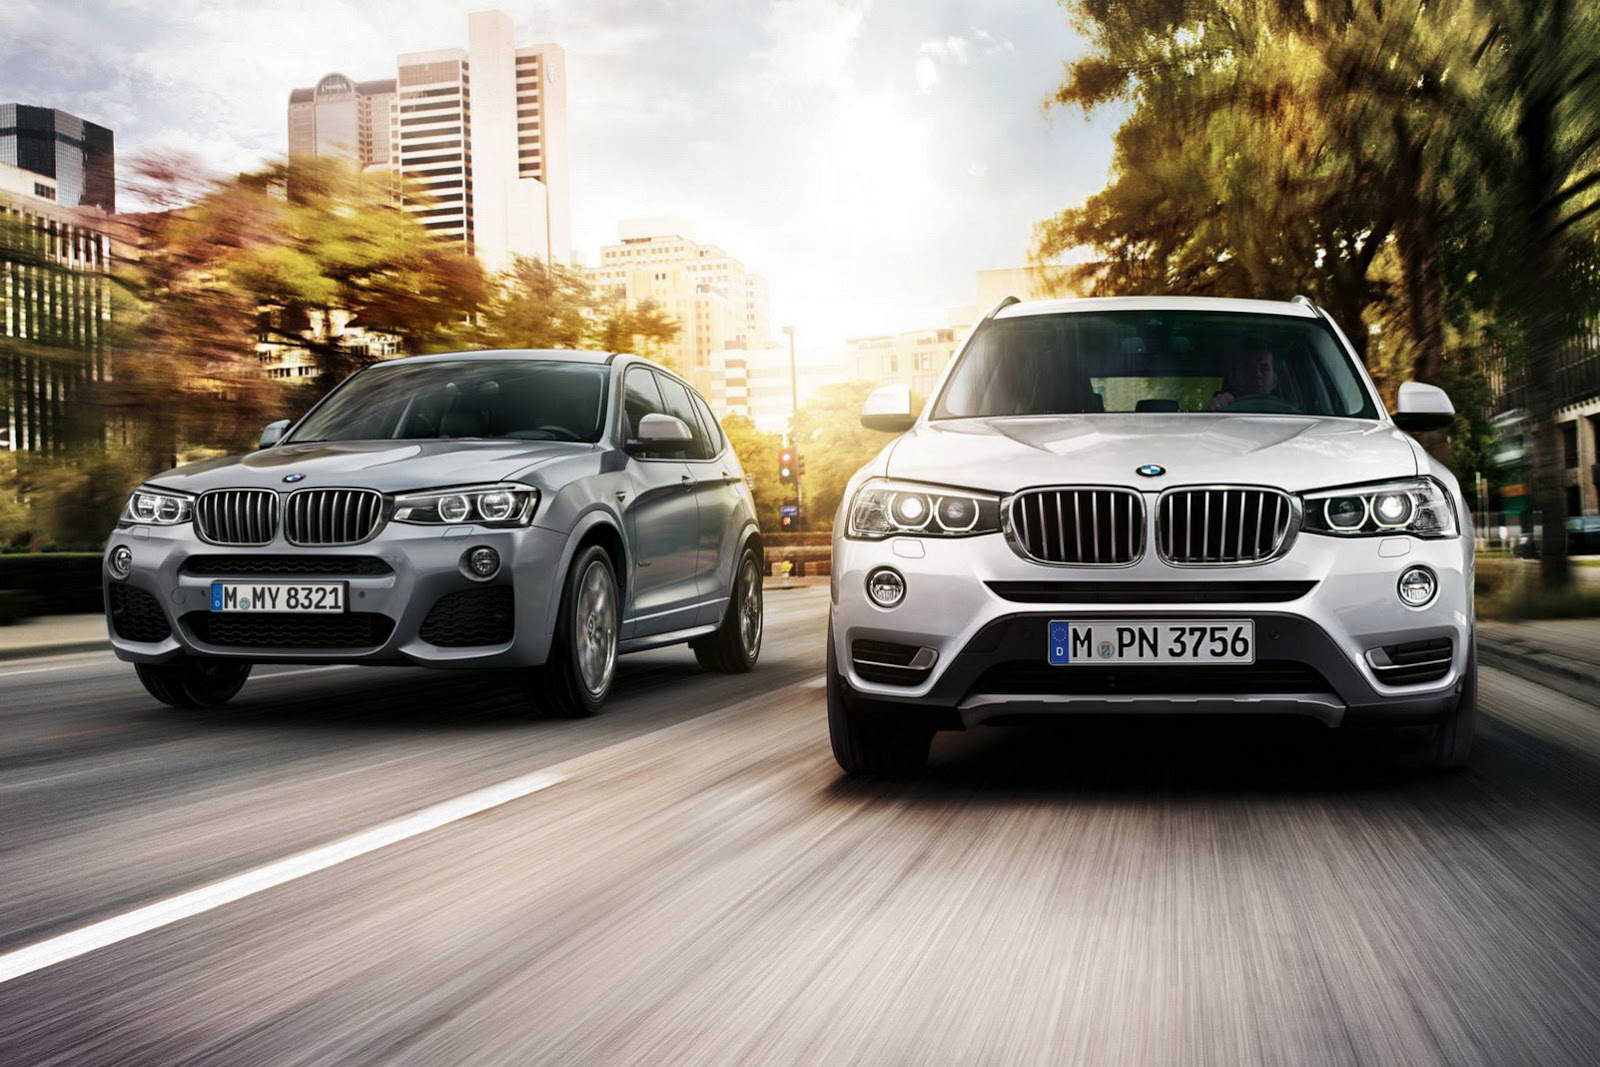 2019 BMW X5 Security photo - 3